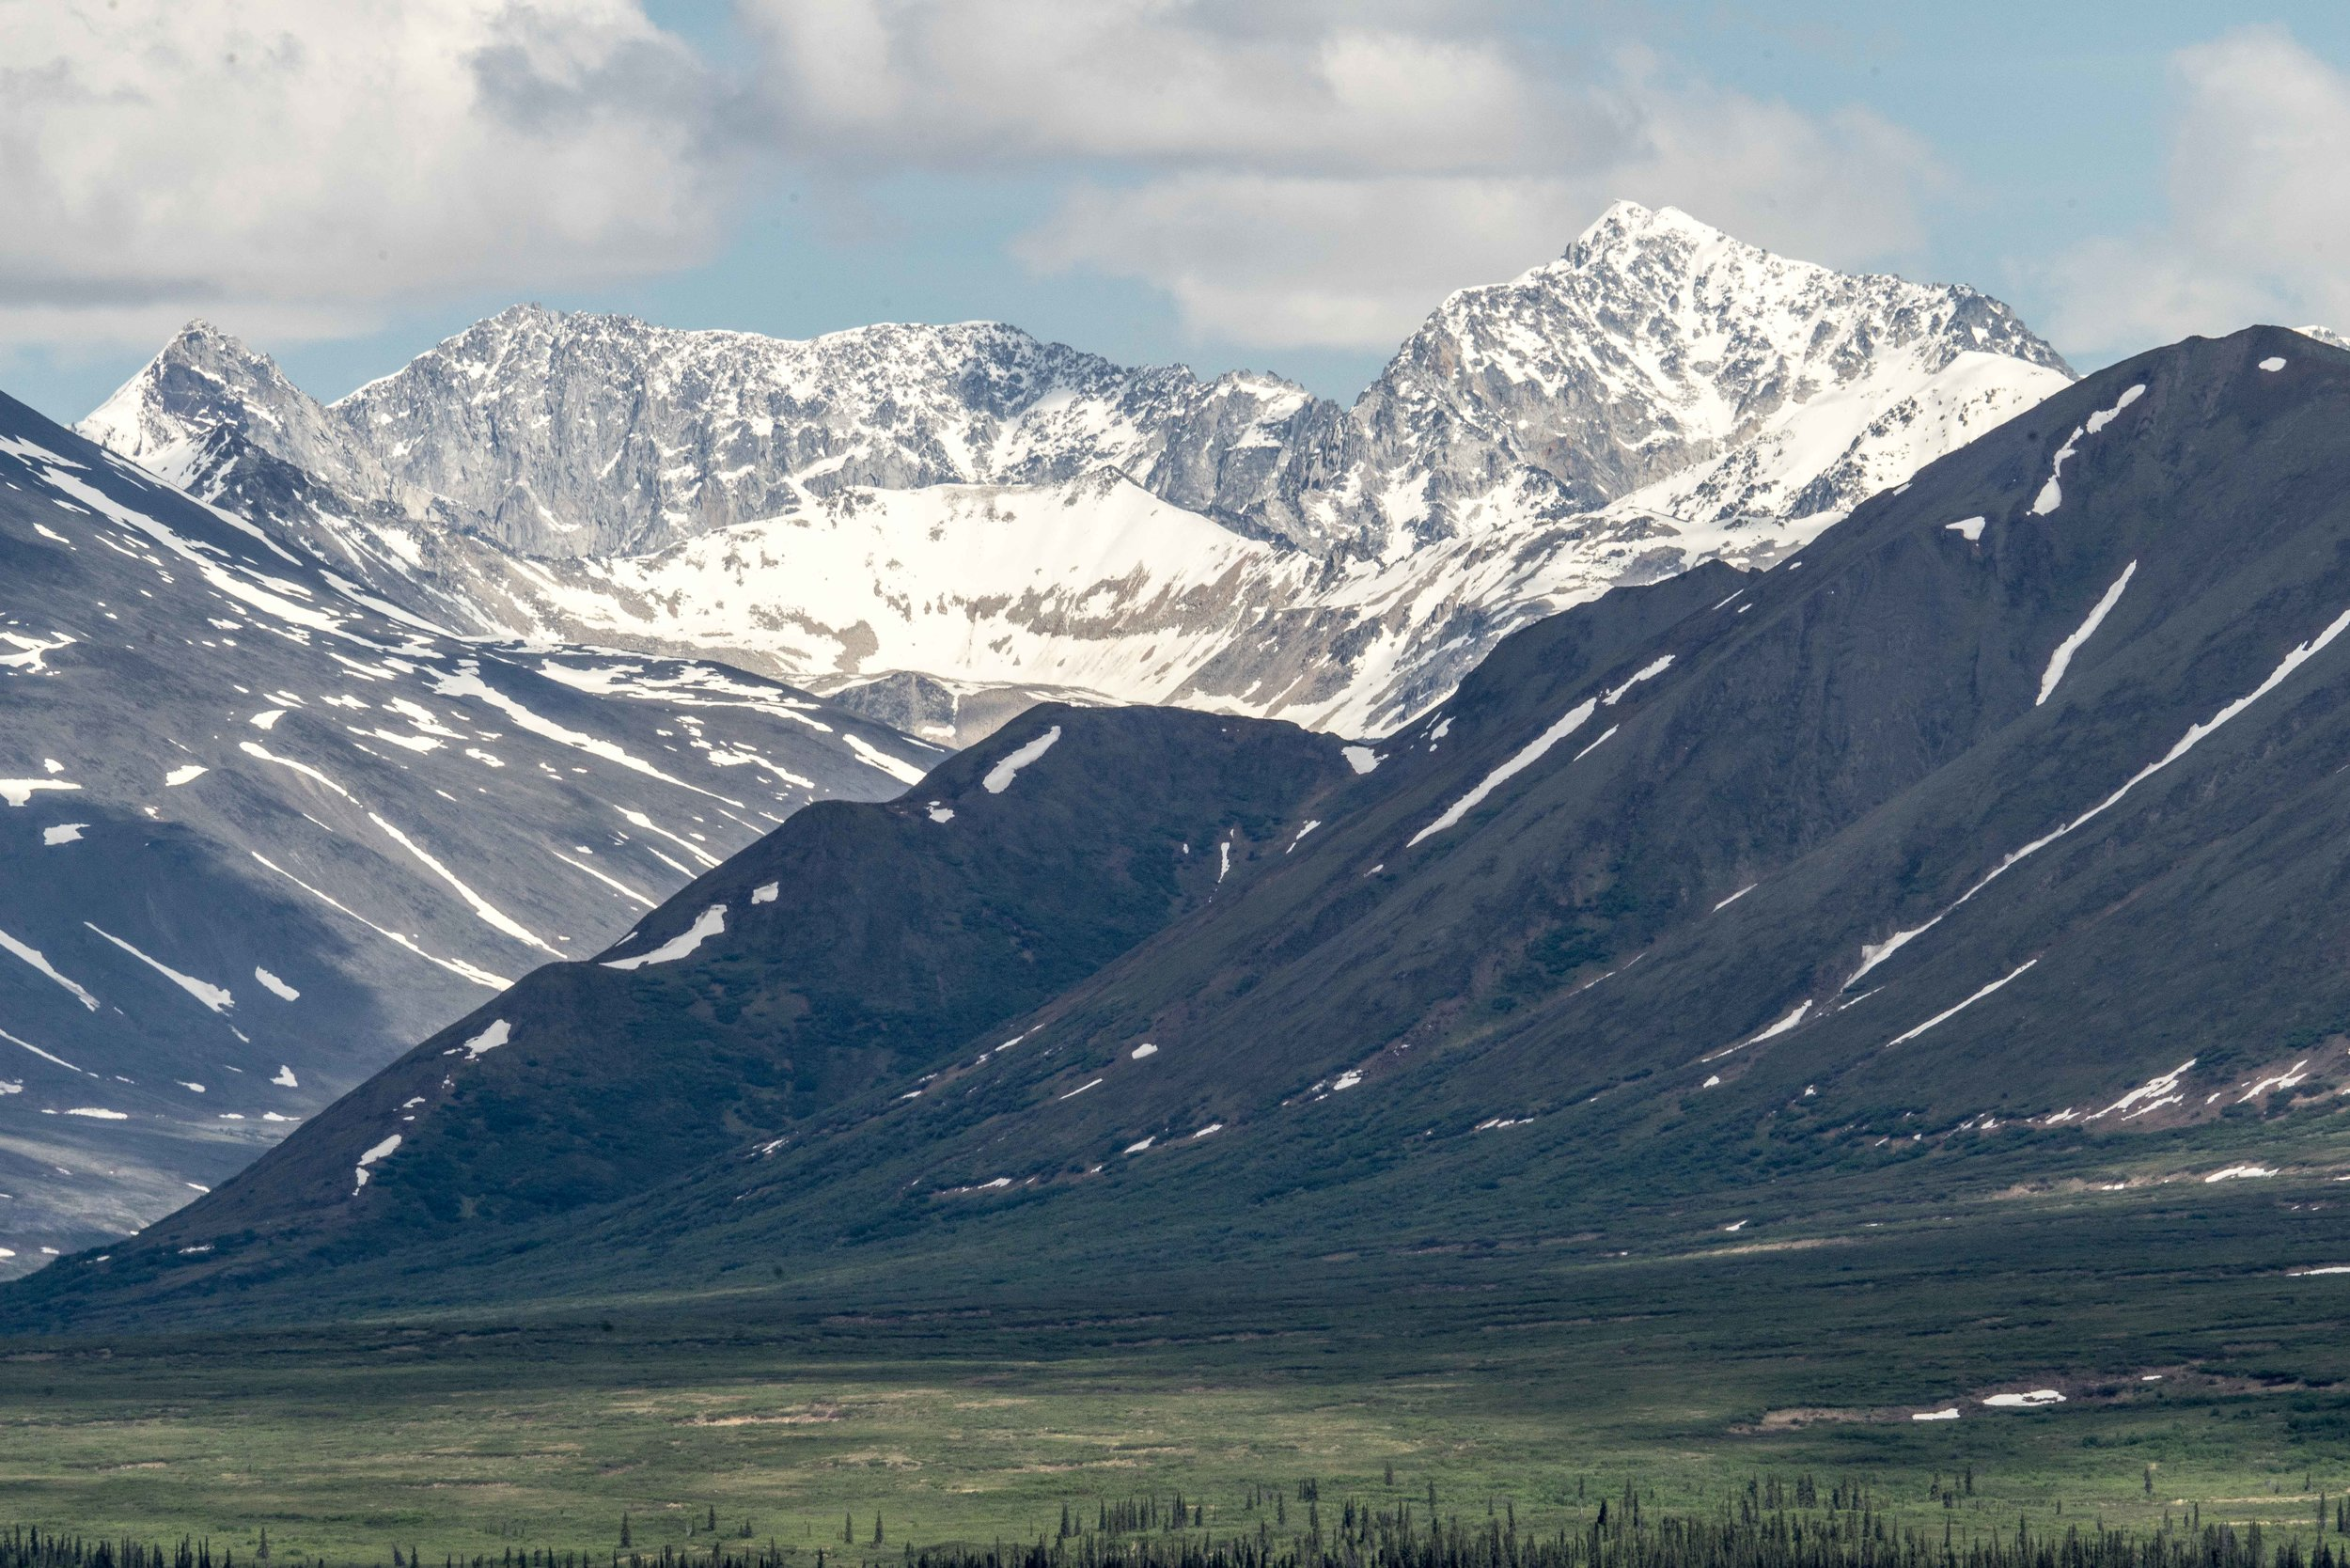 Denali: Not the mountain, the highway. Awesome mountains and adventures await on the Denali Highway.